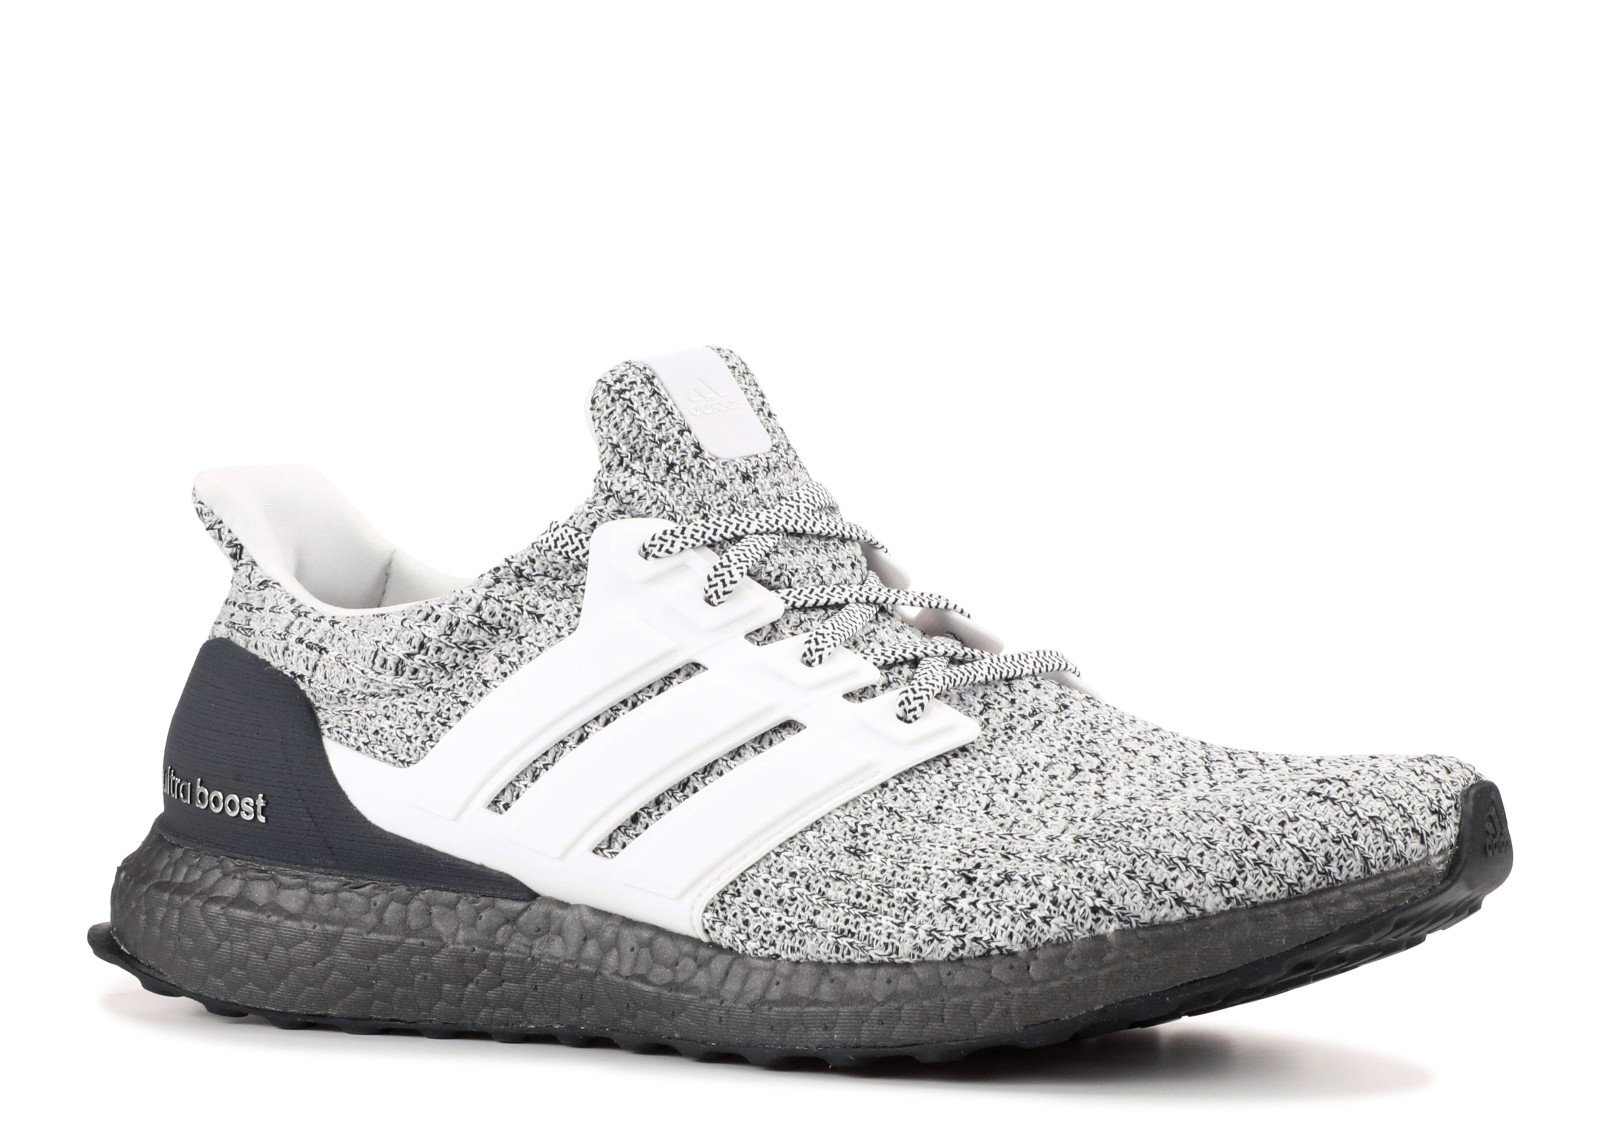 outlet store 28807 bade7 adidas Ultraboost 'Oreo' - Bb6180 - Size 11